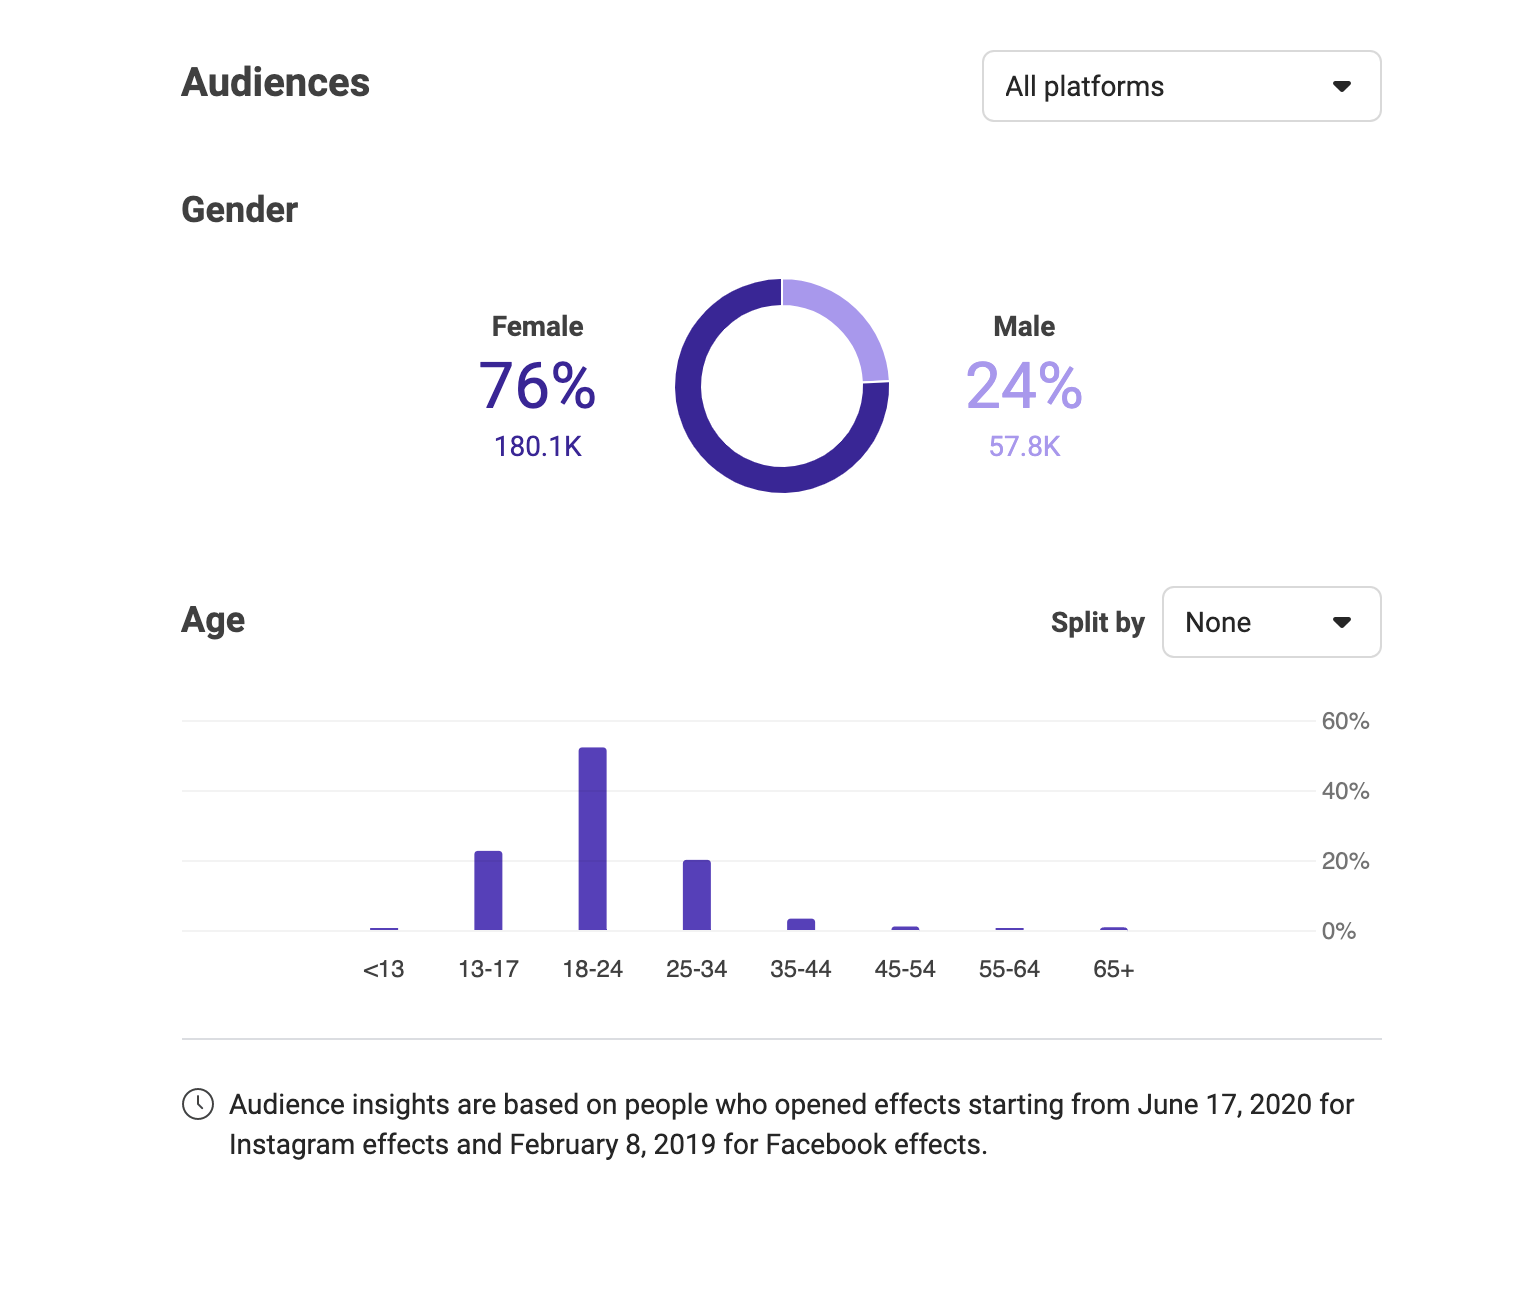 New Audiences Insights on Facebook